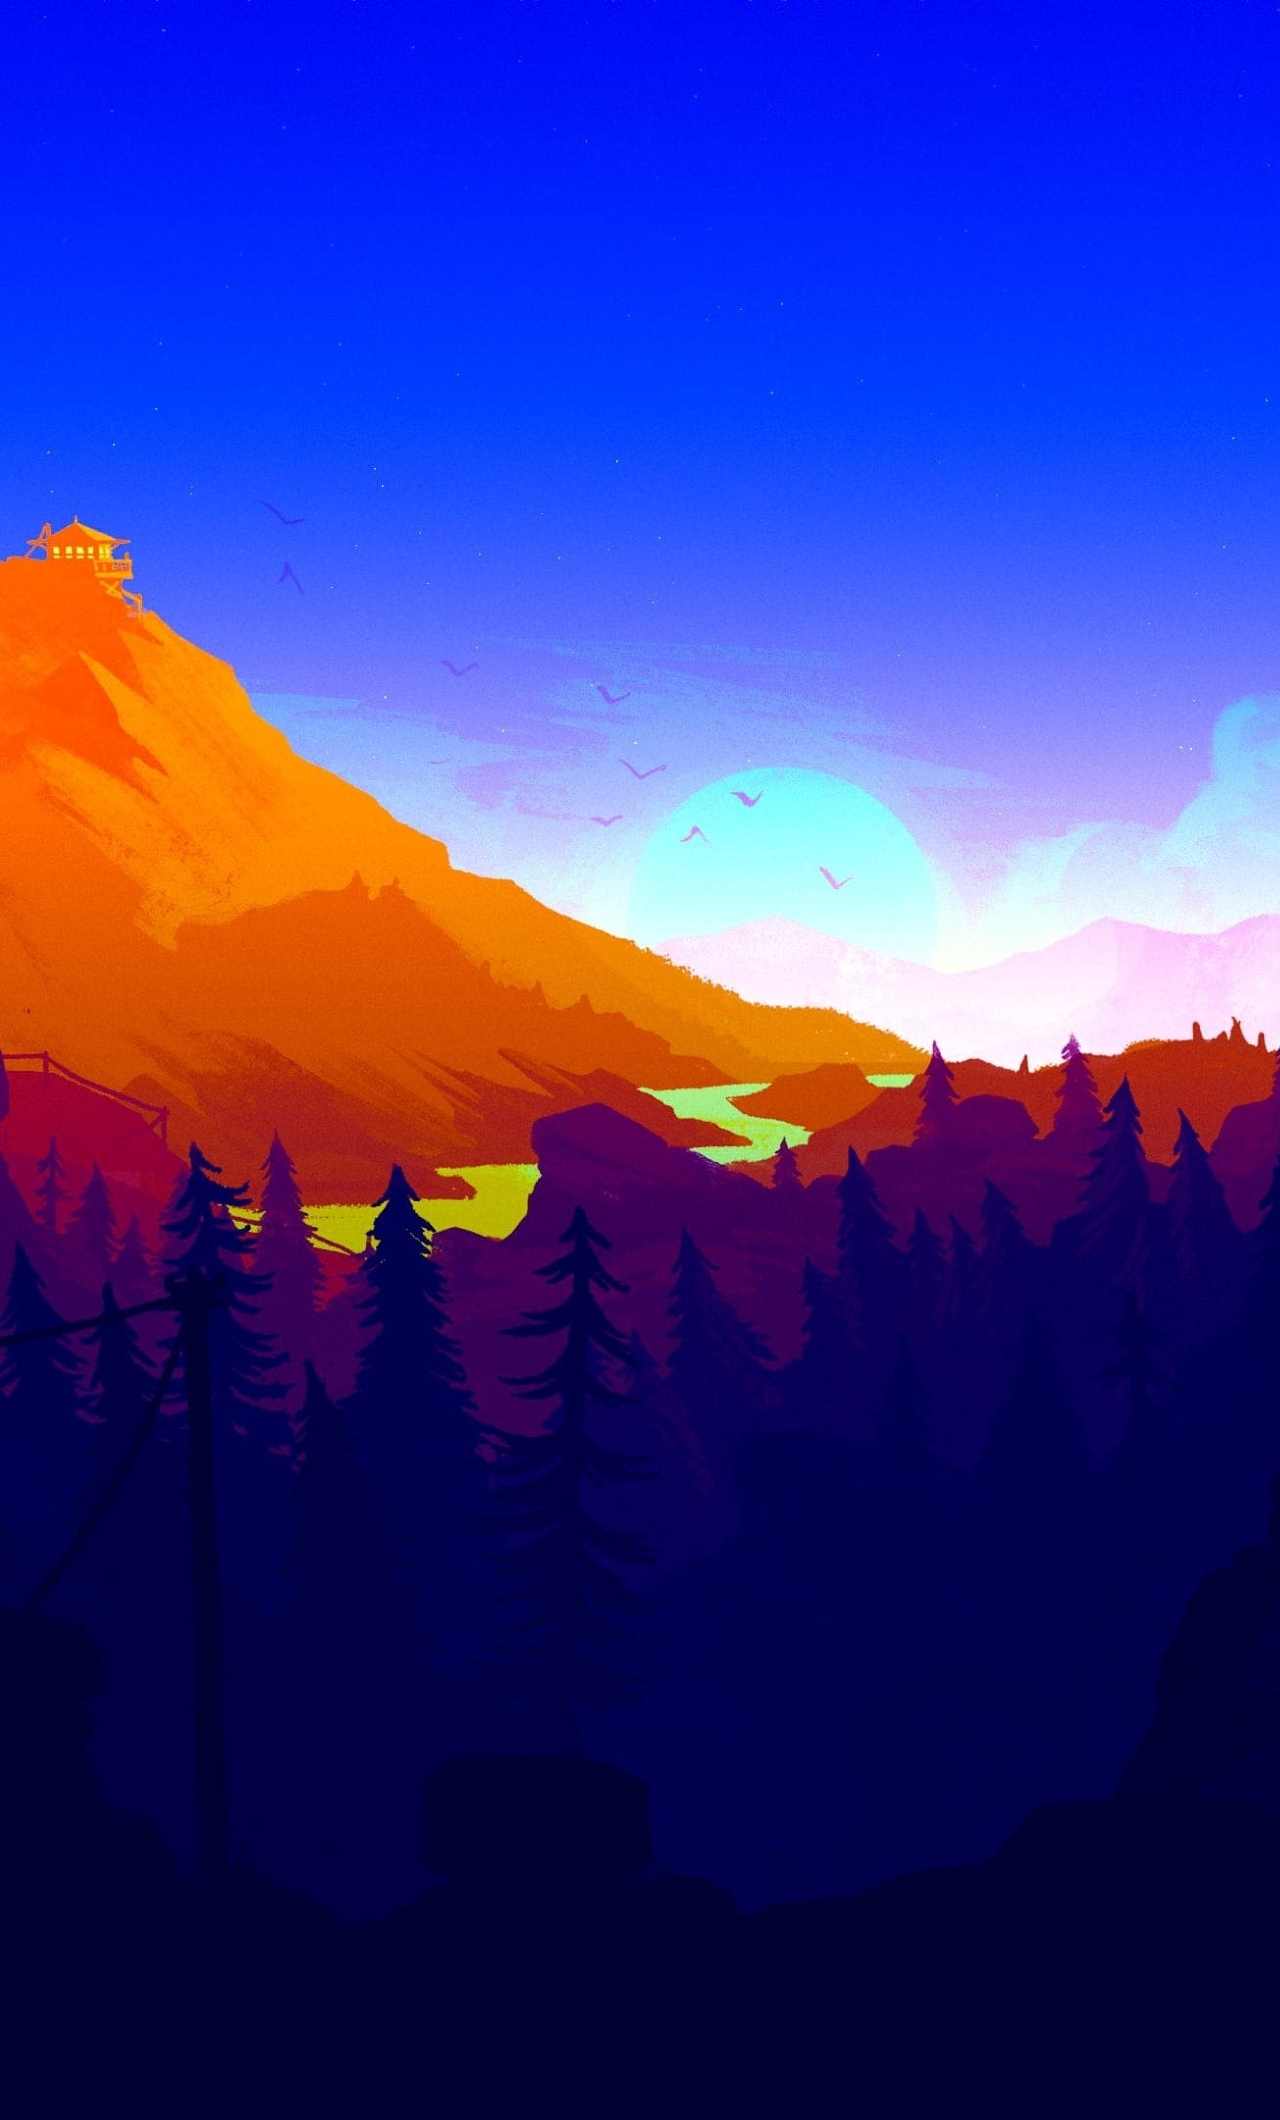 firewatch 2017 hd 4k wallpaper